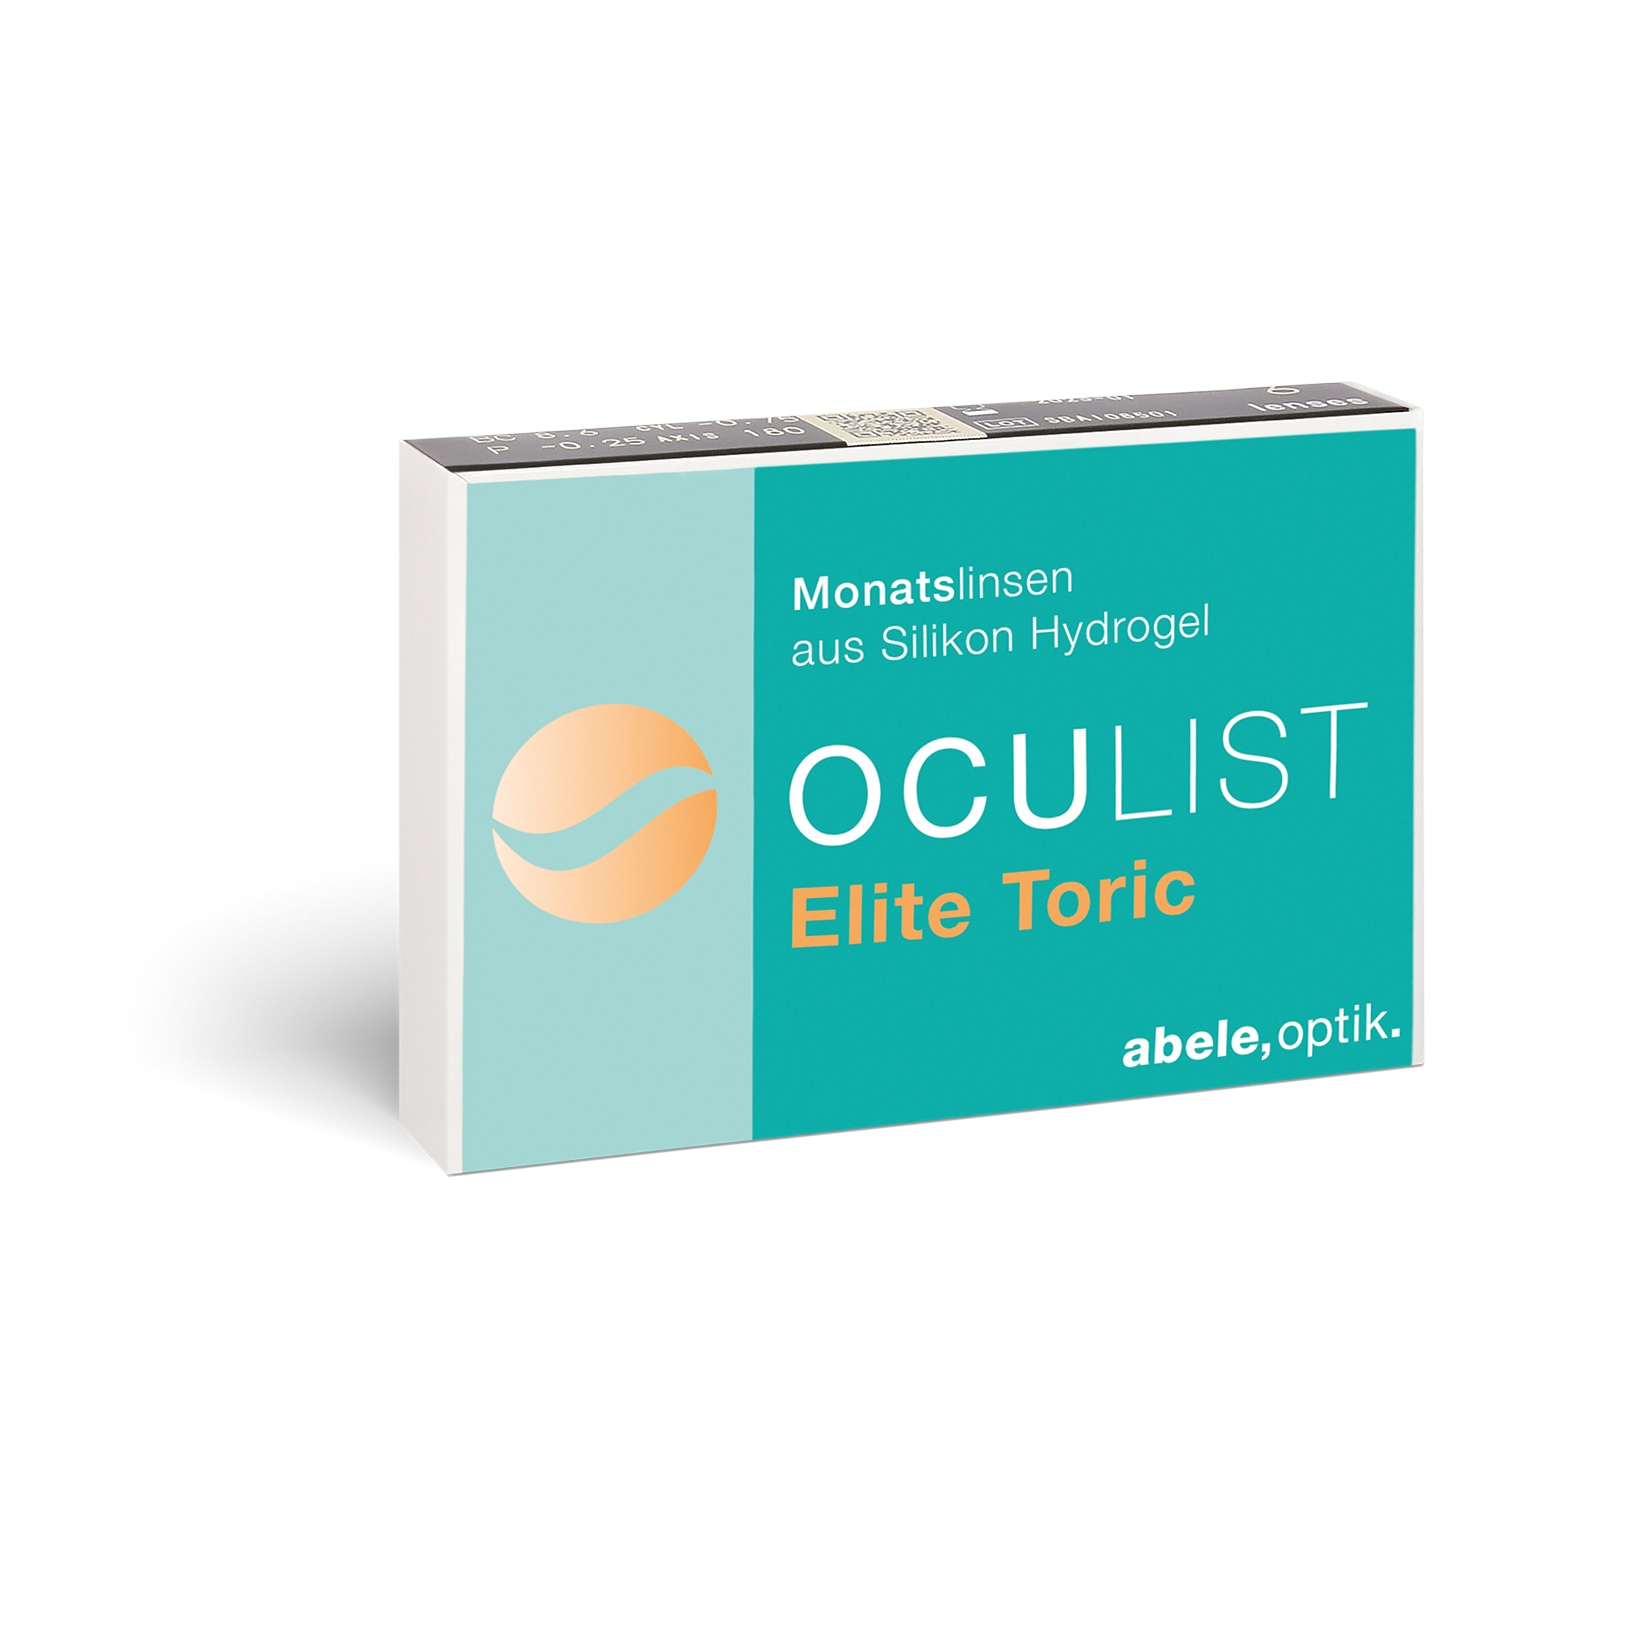 Oculist Elite Toric, Abele Optik (6 Stk.)